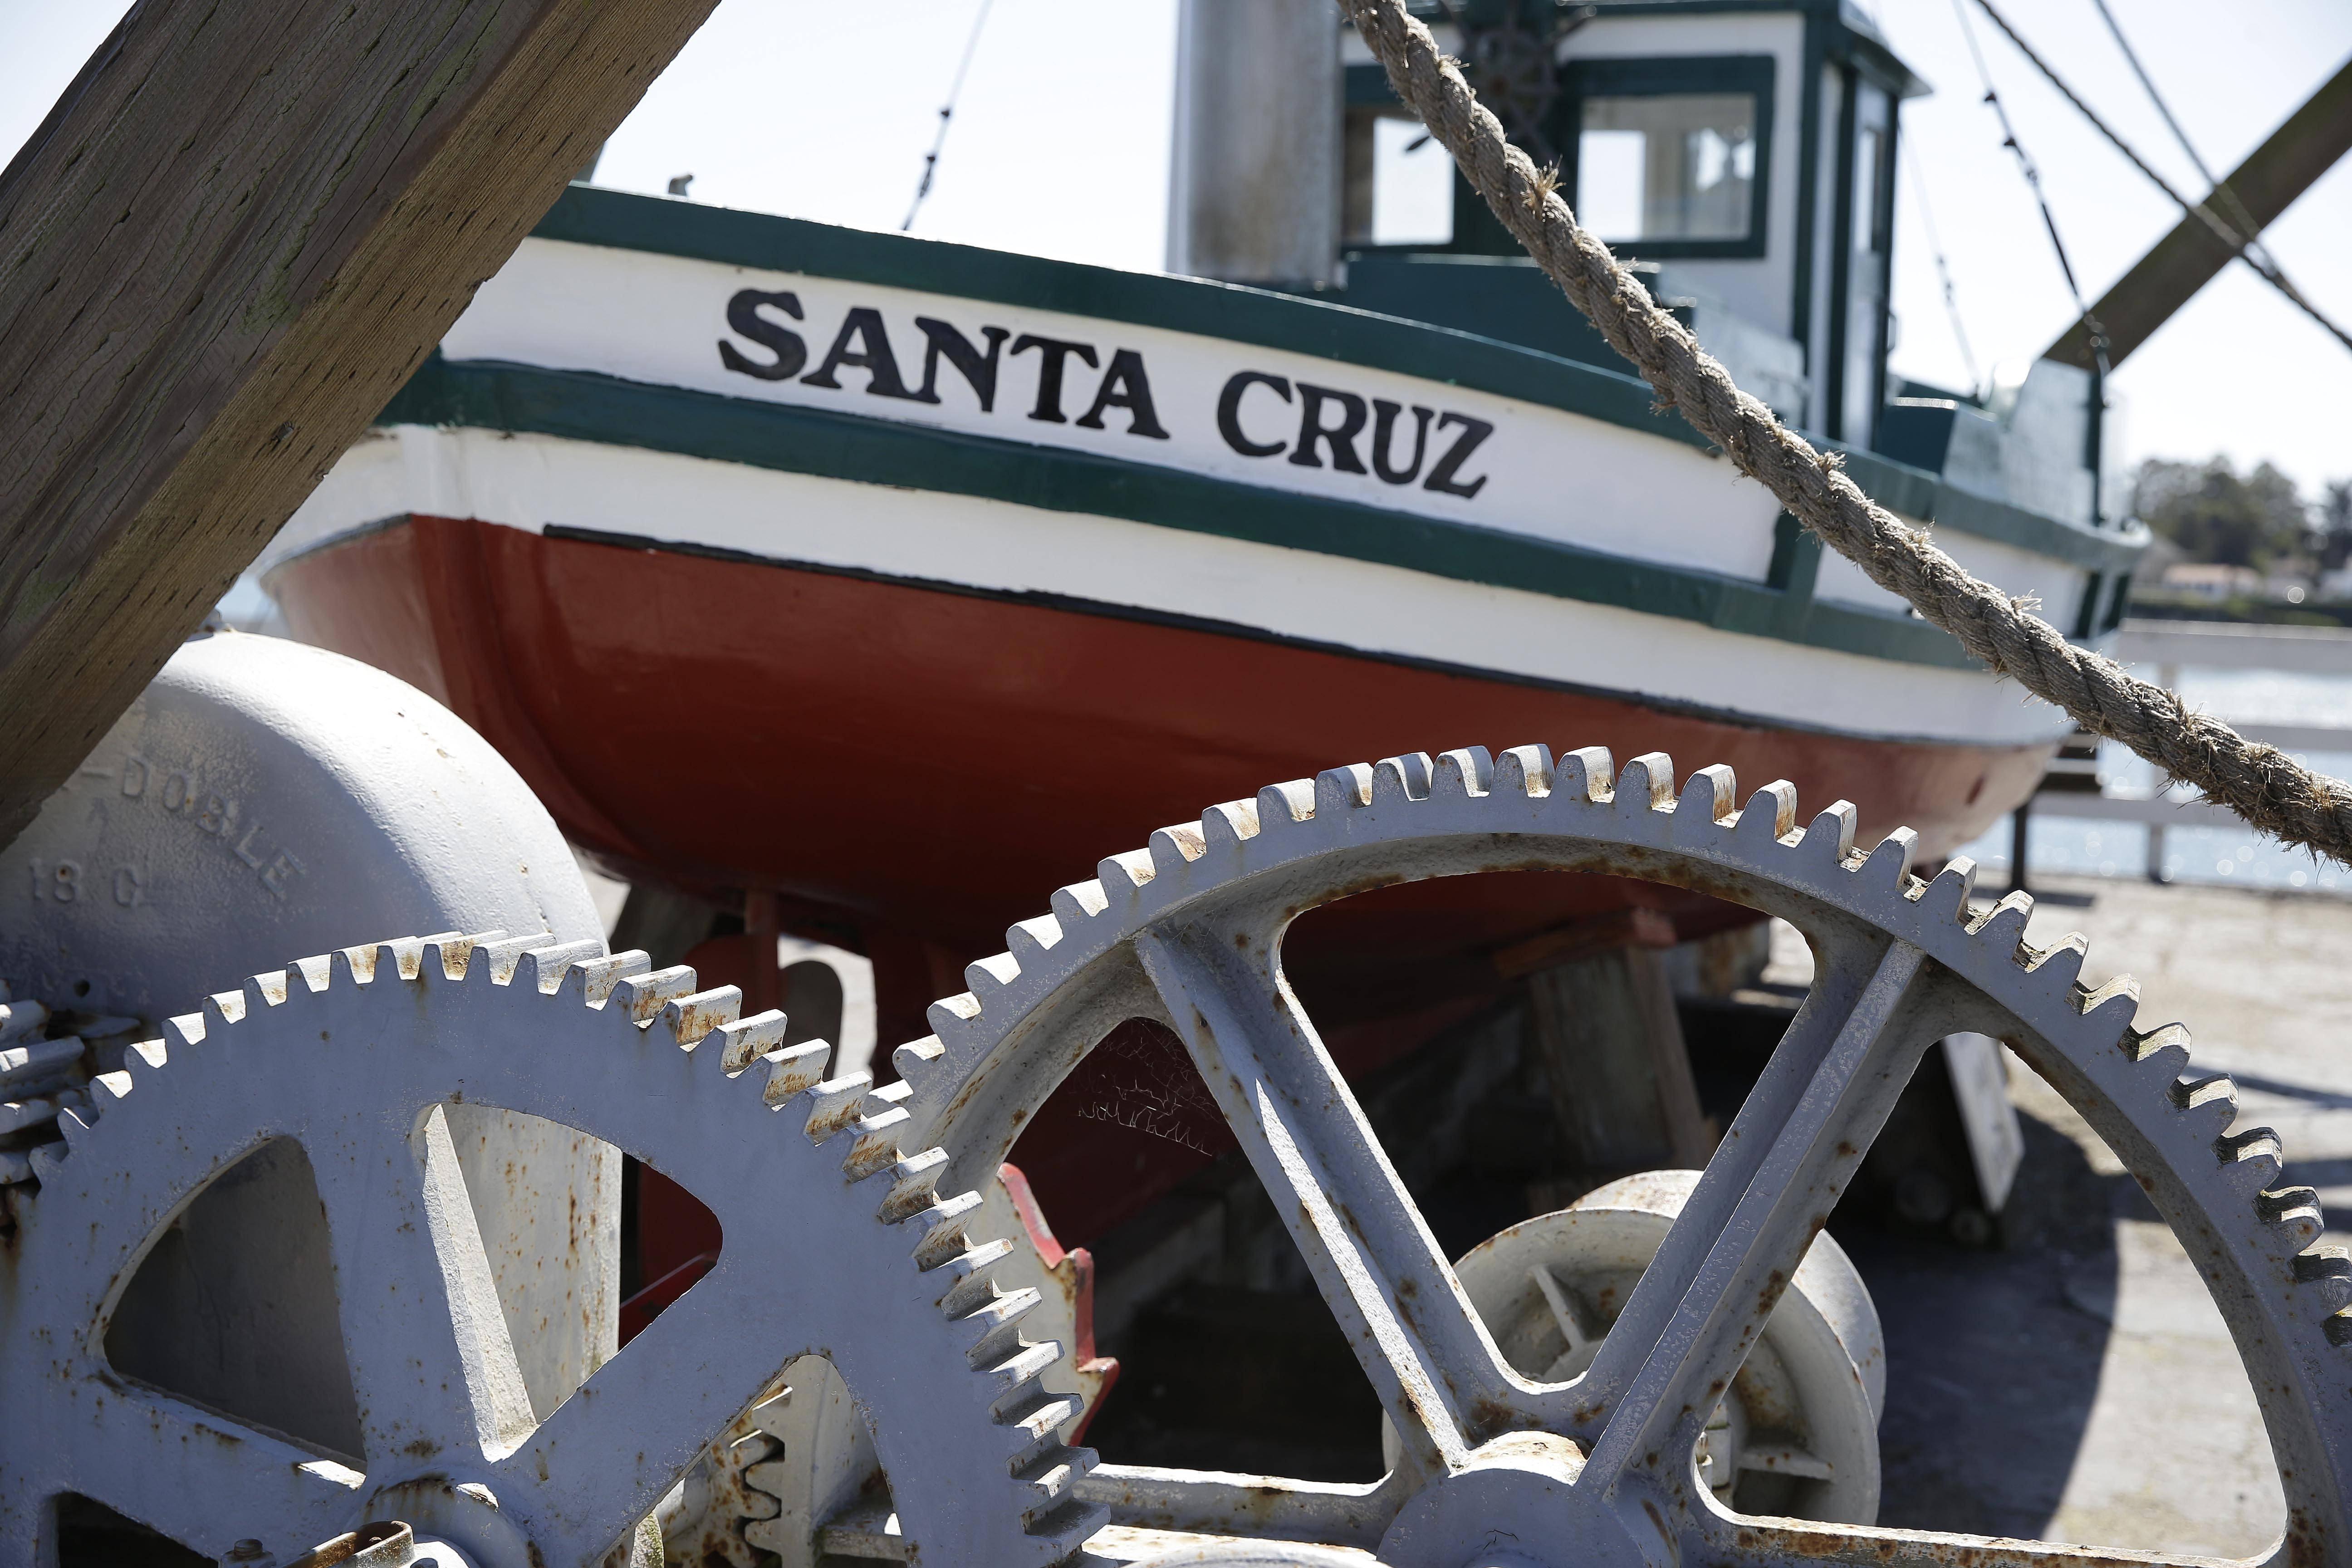 An old felucca fishing boat sits by a boat lift on the Santa Cruz Wharf in Santa Cruz, Calif. The wharf is one of several attractions that can be enjoyed for free in this seaside city.